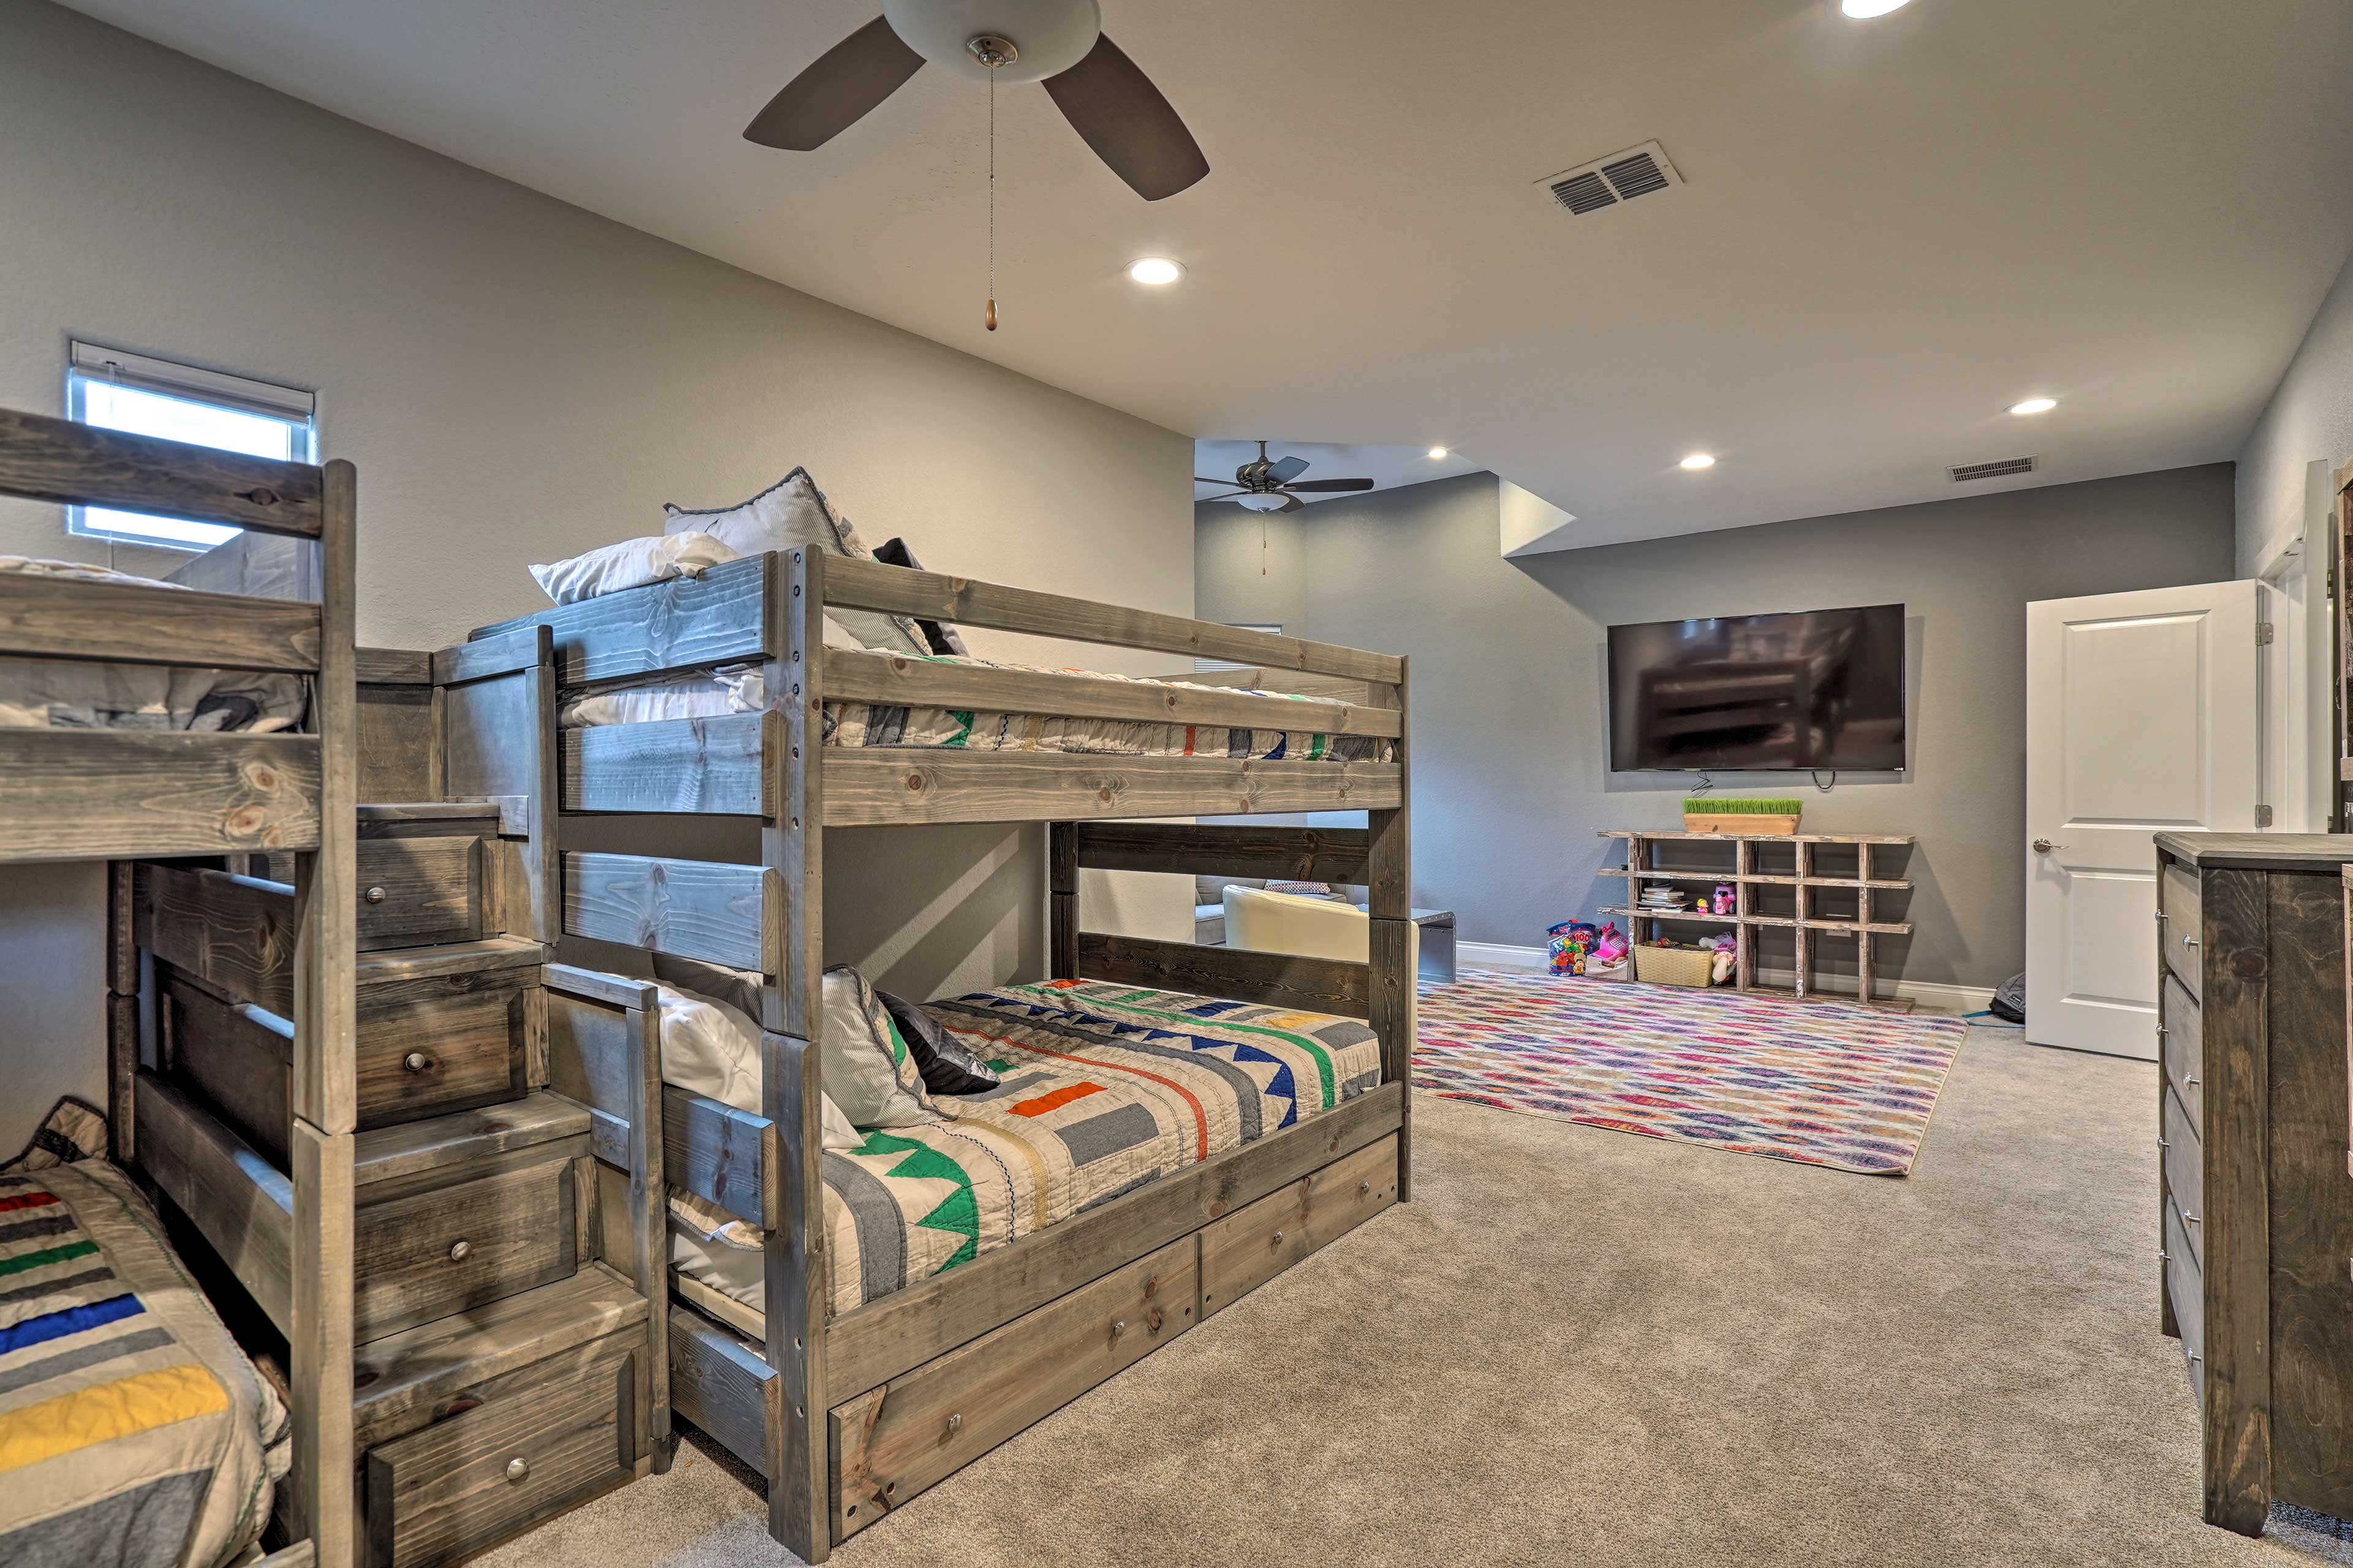 With multiple bunk beds, there's plenty of sleeping space.